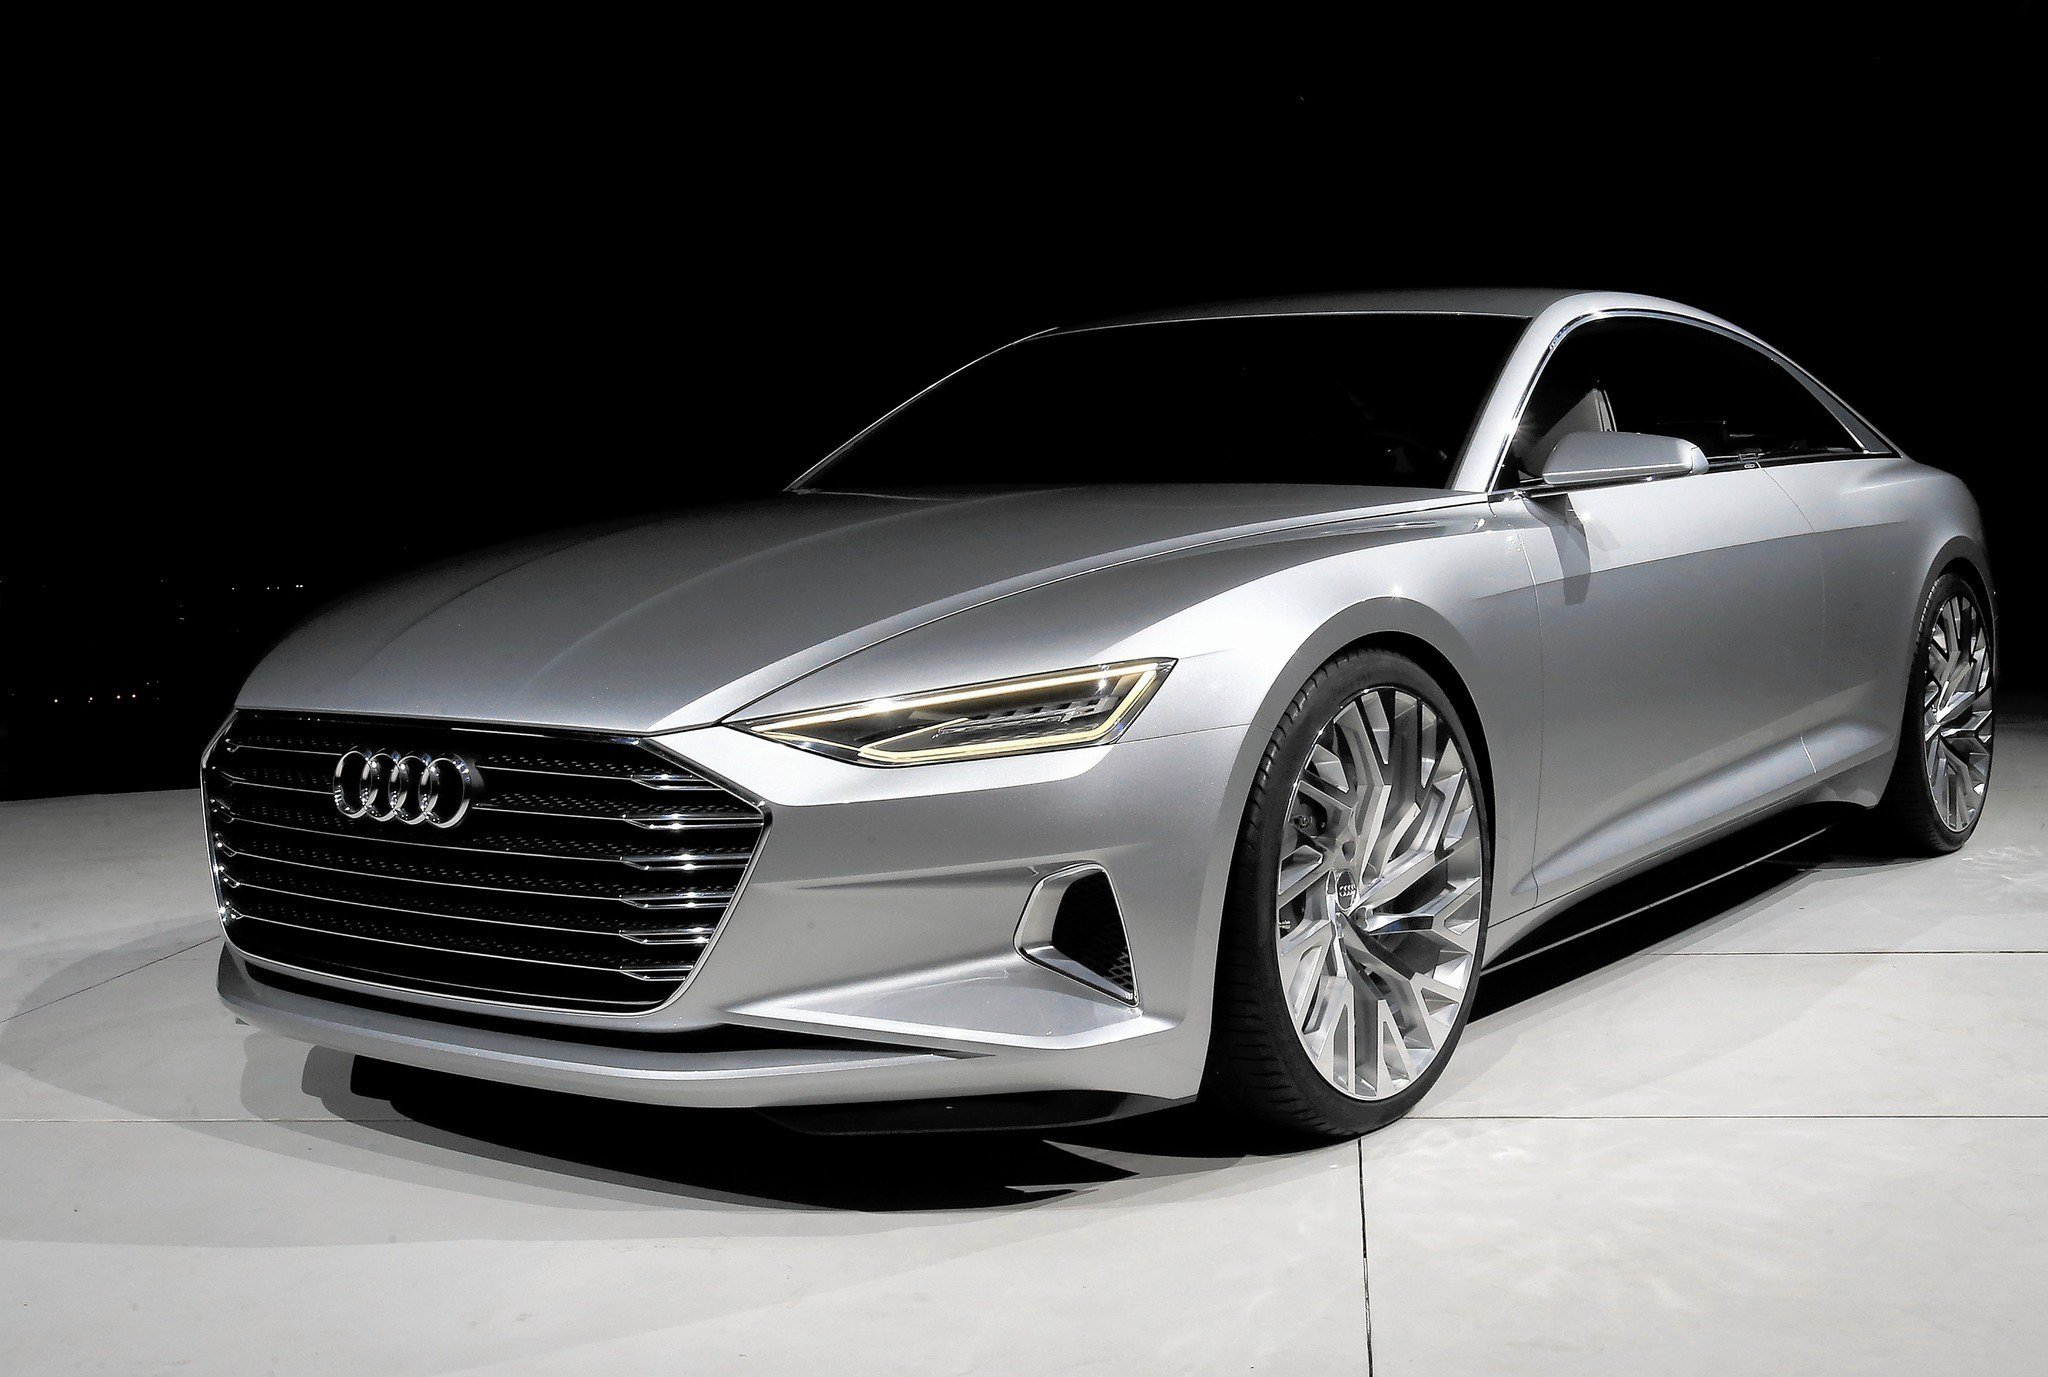 Latest Audi Prologue Concept Car Foreshadows A Sultry Luxurious Free Download